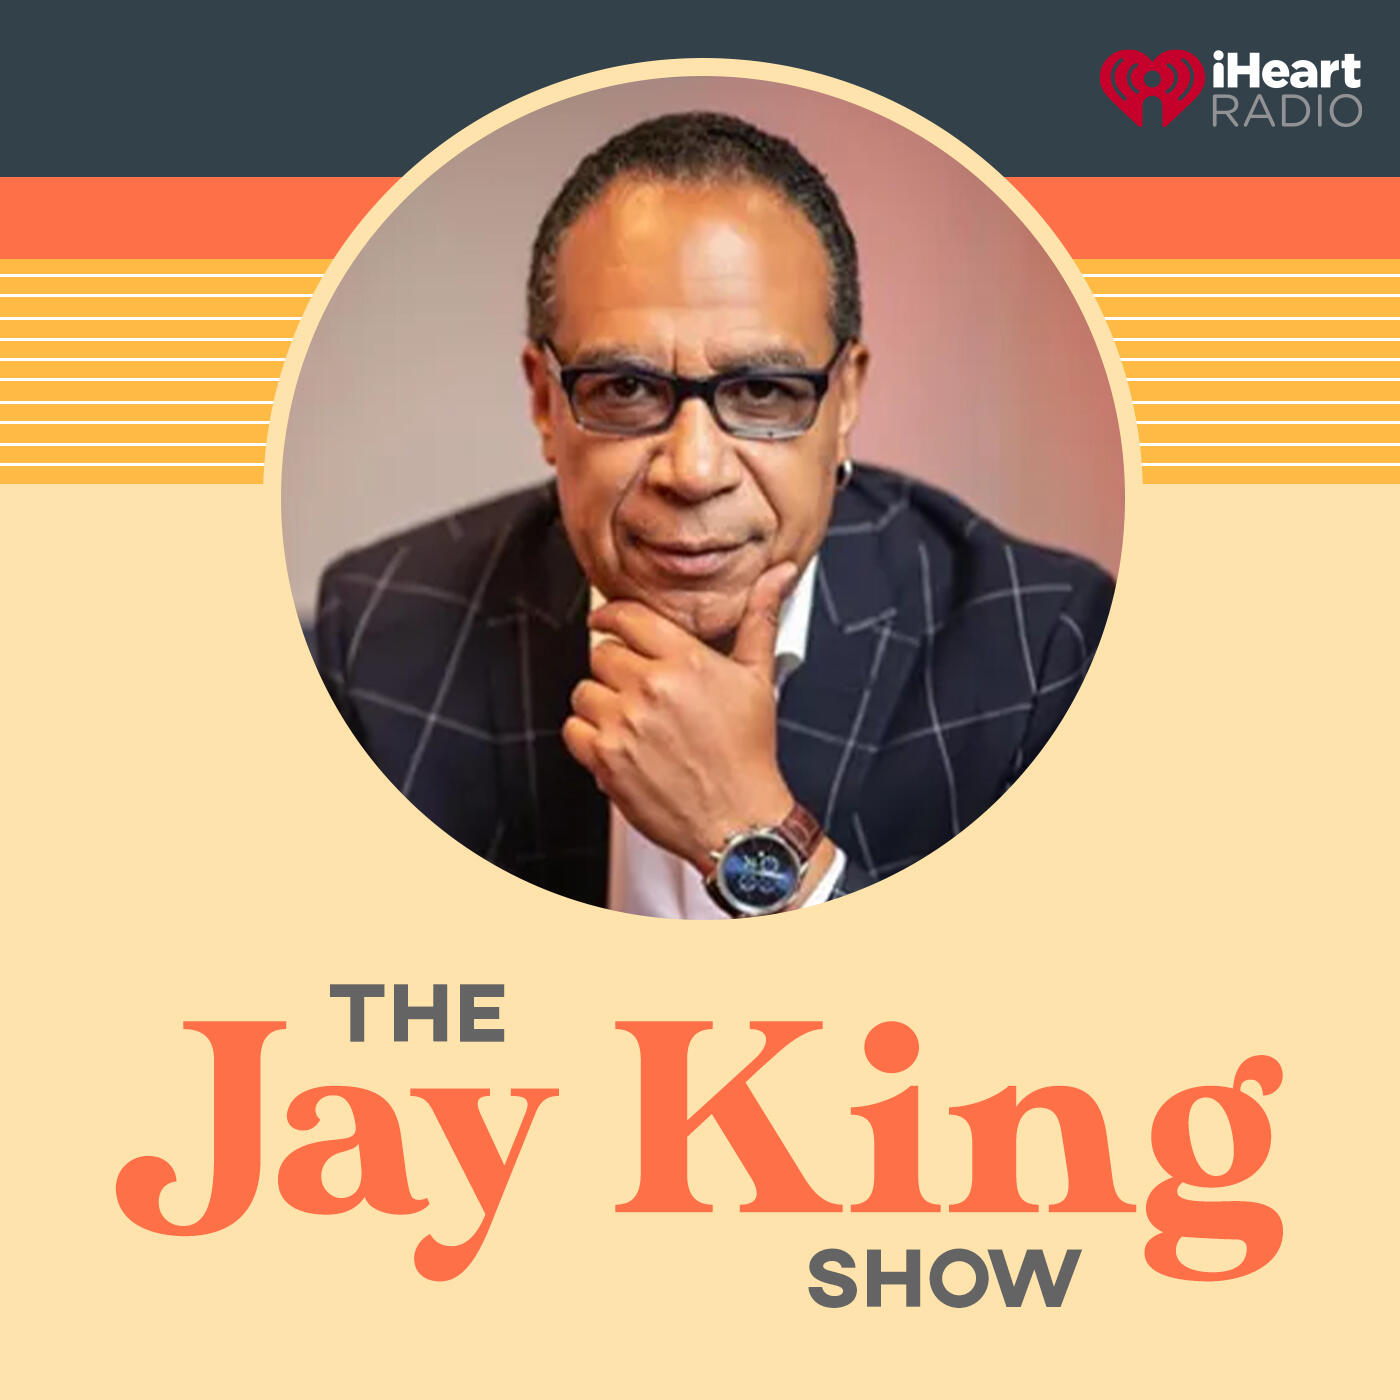 The Jay King Show